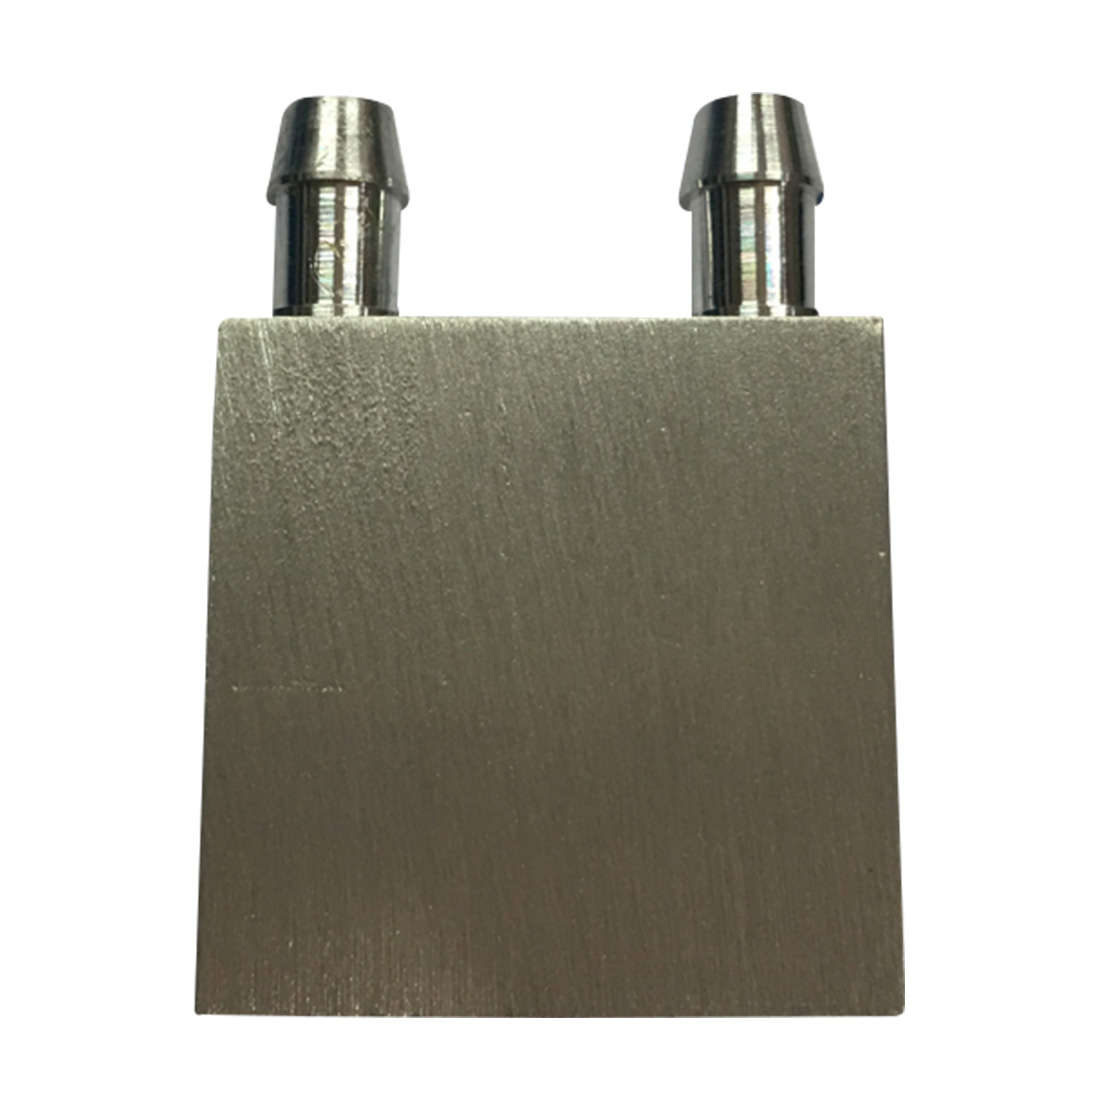 NOYOKERE Primary Aluminum Water Cooling Block 40*40mm for Liquid Water Cooler Heat Sink System Silv silv 100% 925 ee006